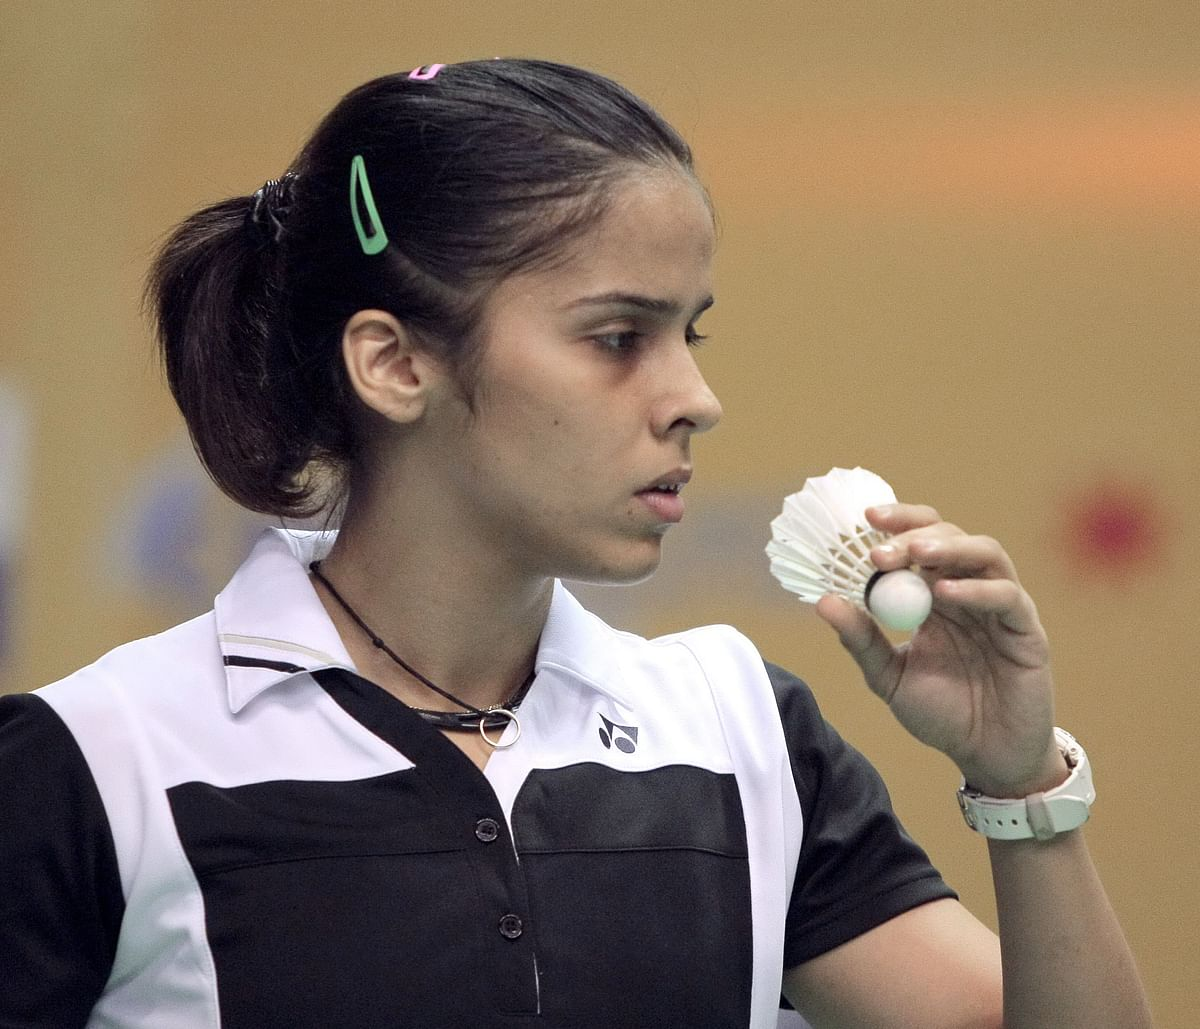 We are taking one match at a time: Saina